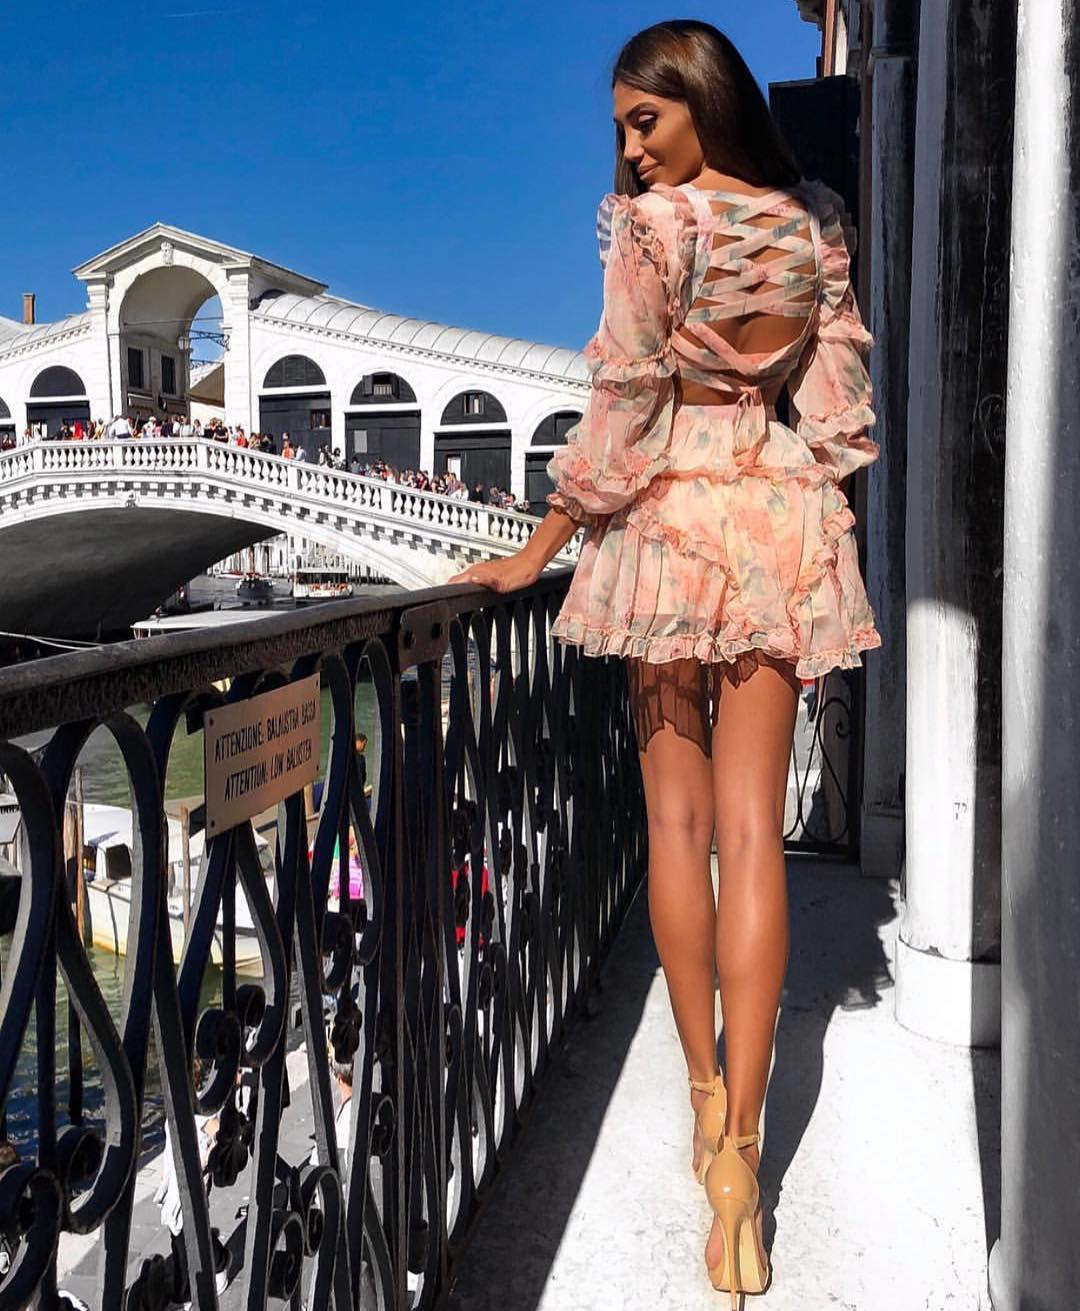 Pastel Floral Mini Dress With Ruffles And Lace Up Back For Summer Vacation 2020